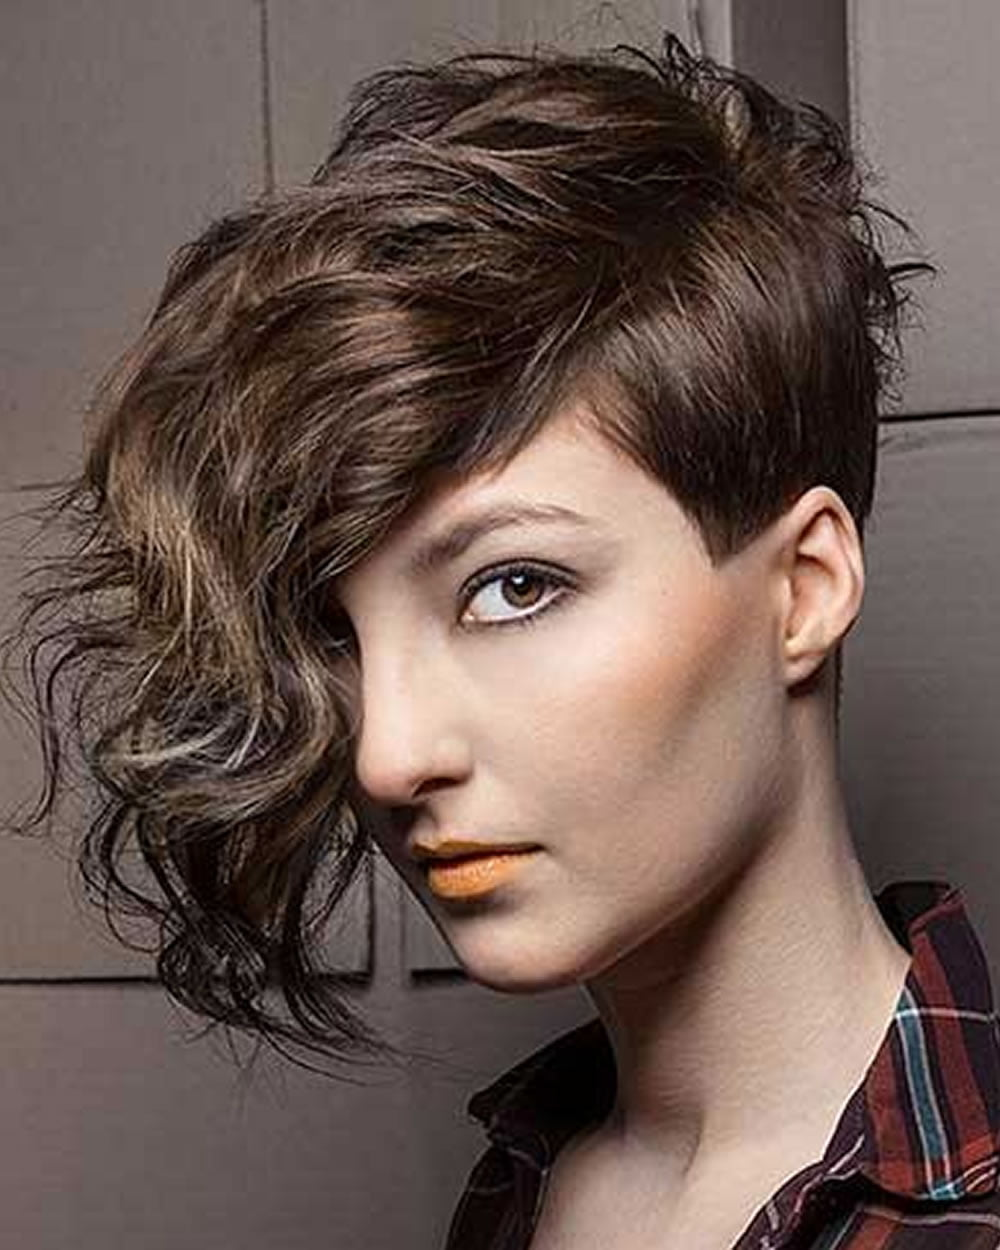 Short Curly Asymmetrical Bob Haircut for Fine Hair in 2020 - Page 2 - HAIRSTYLES